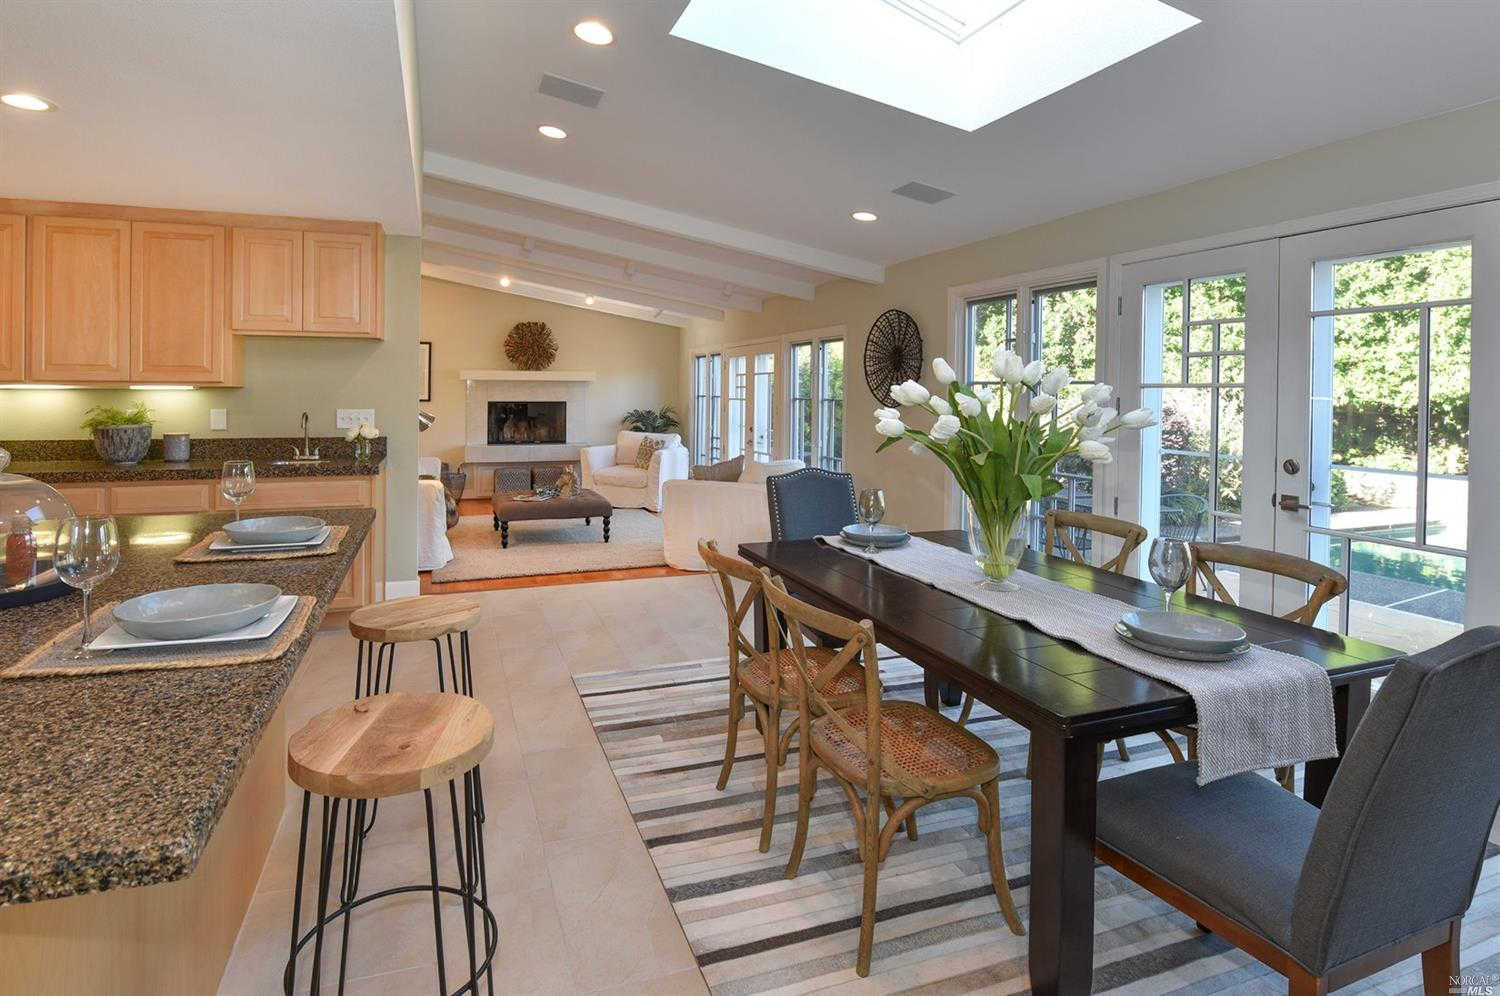 1530 Chablis Circle, St. Helena, CA 94574 now has a new price of $1,774,000!